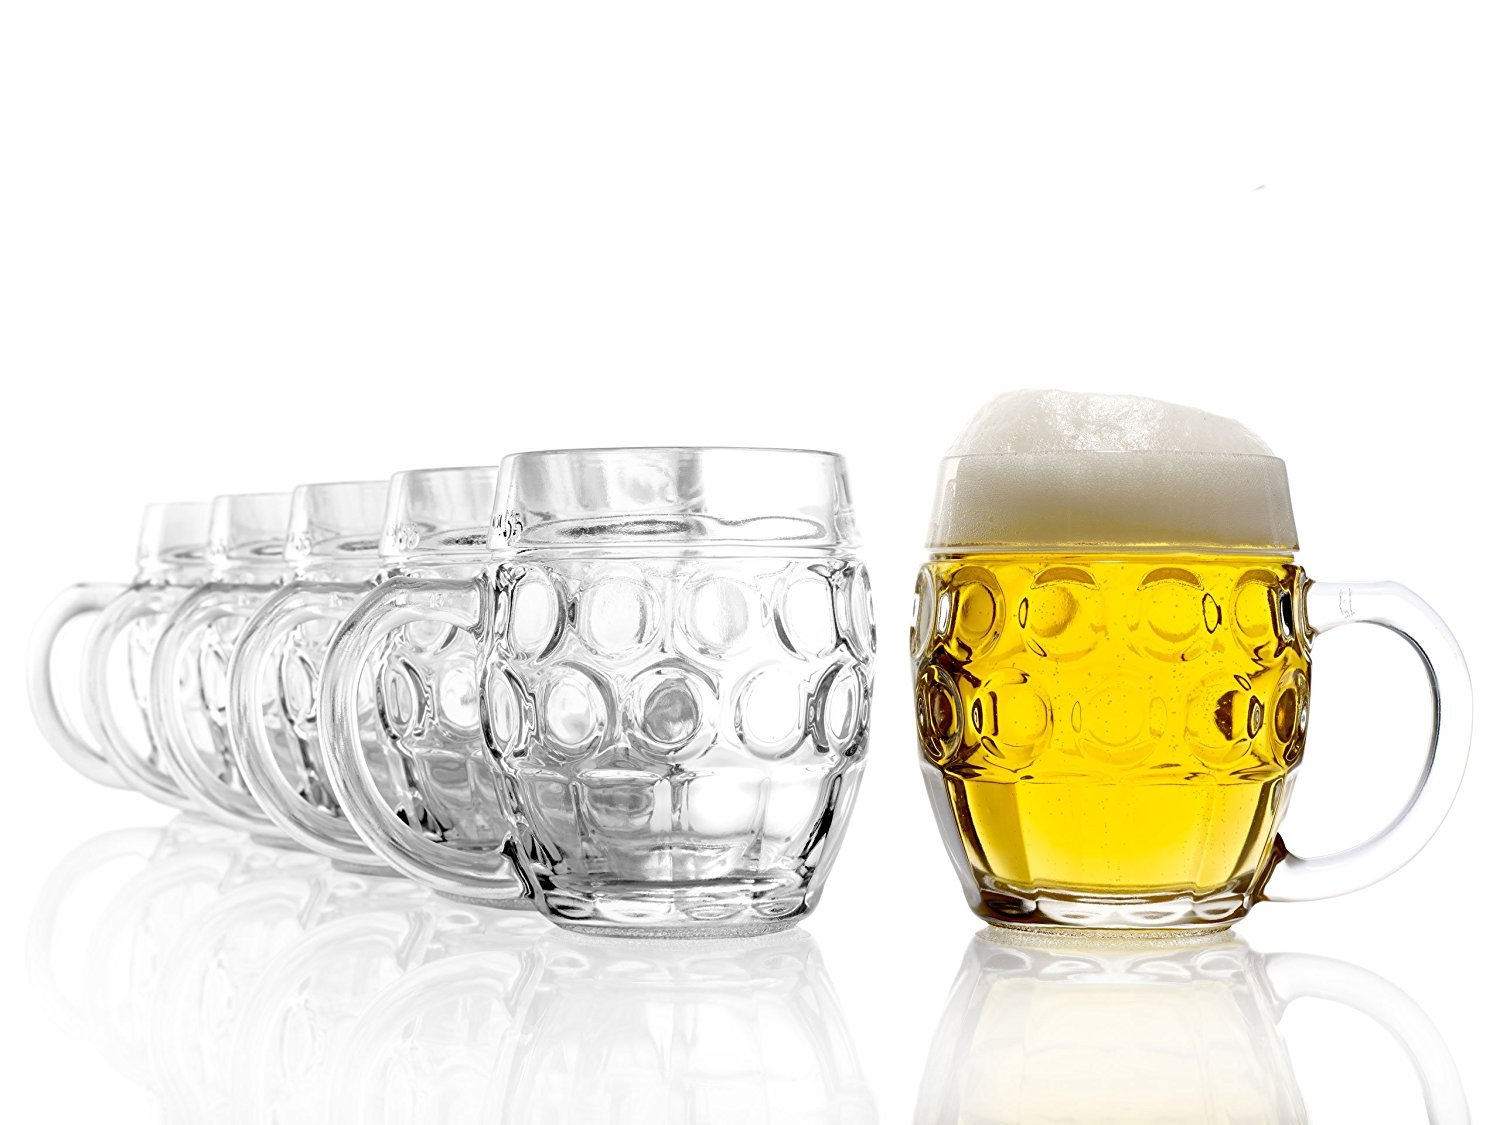 Stölzle Oberglas Tübinger Eye Pint Glass Ball, 0.5 Litre Jug with Fill Line, Traditional Design, Set of 6, Dishwasher Safe